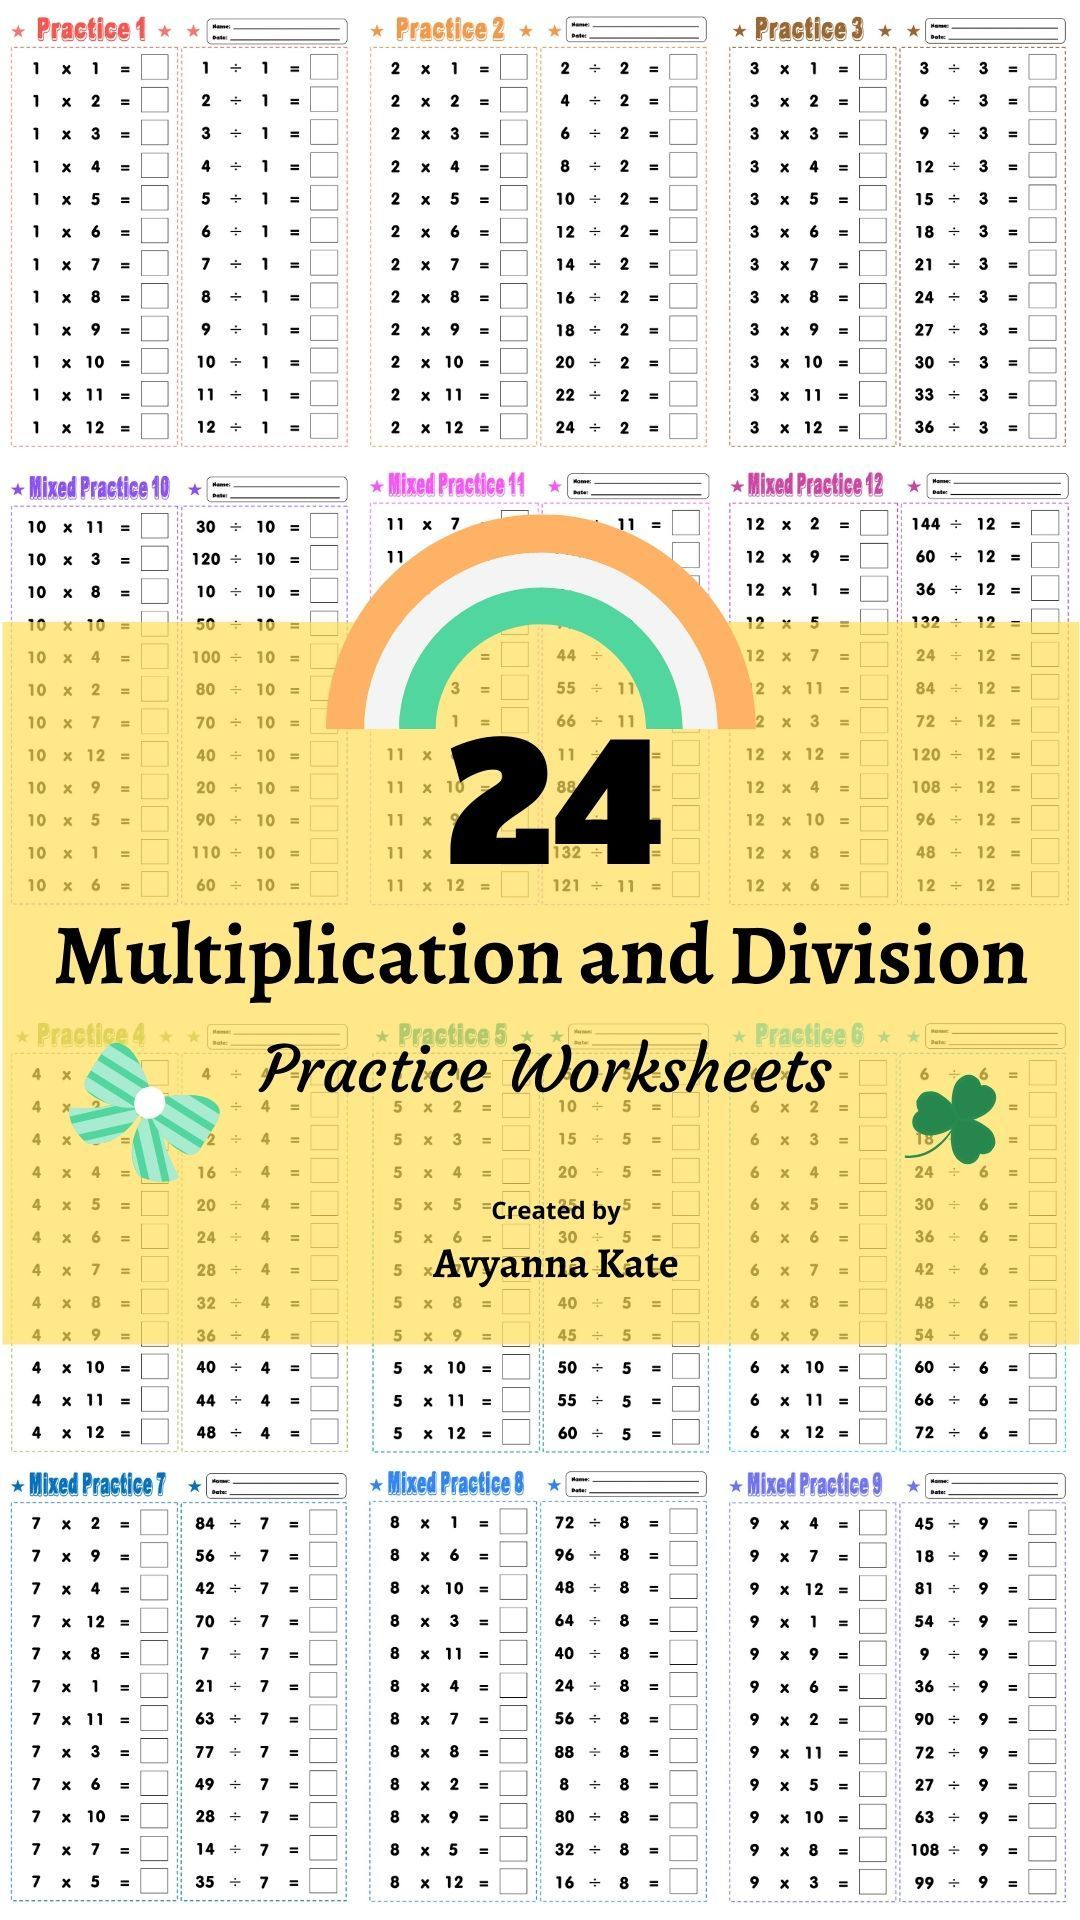 Free 24 Multiplication And Division Practice Worksheets Multiplication And Division Free Math Worksheets Free Math [ 1920 x 1080 Pixel ]